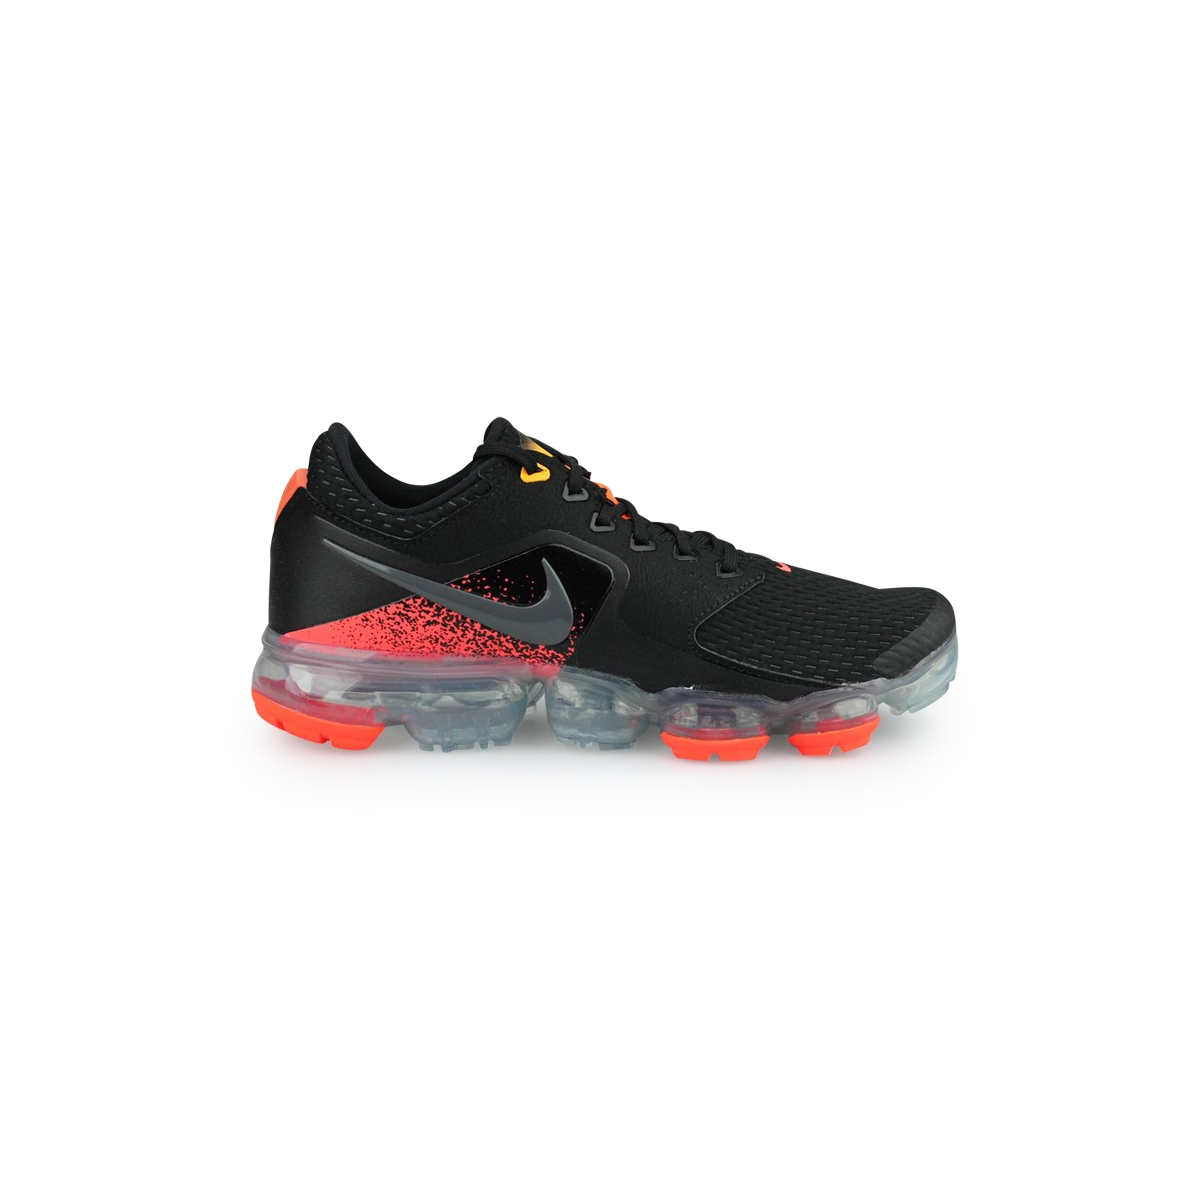 on sale f1003 cccc8 NIKE AIR VAPORMAX JUNIOR NOIR 917963-009. Loading zoom